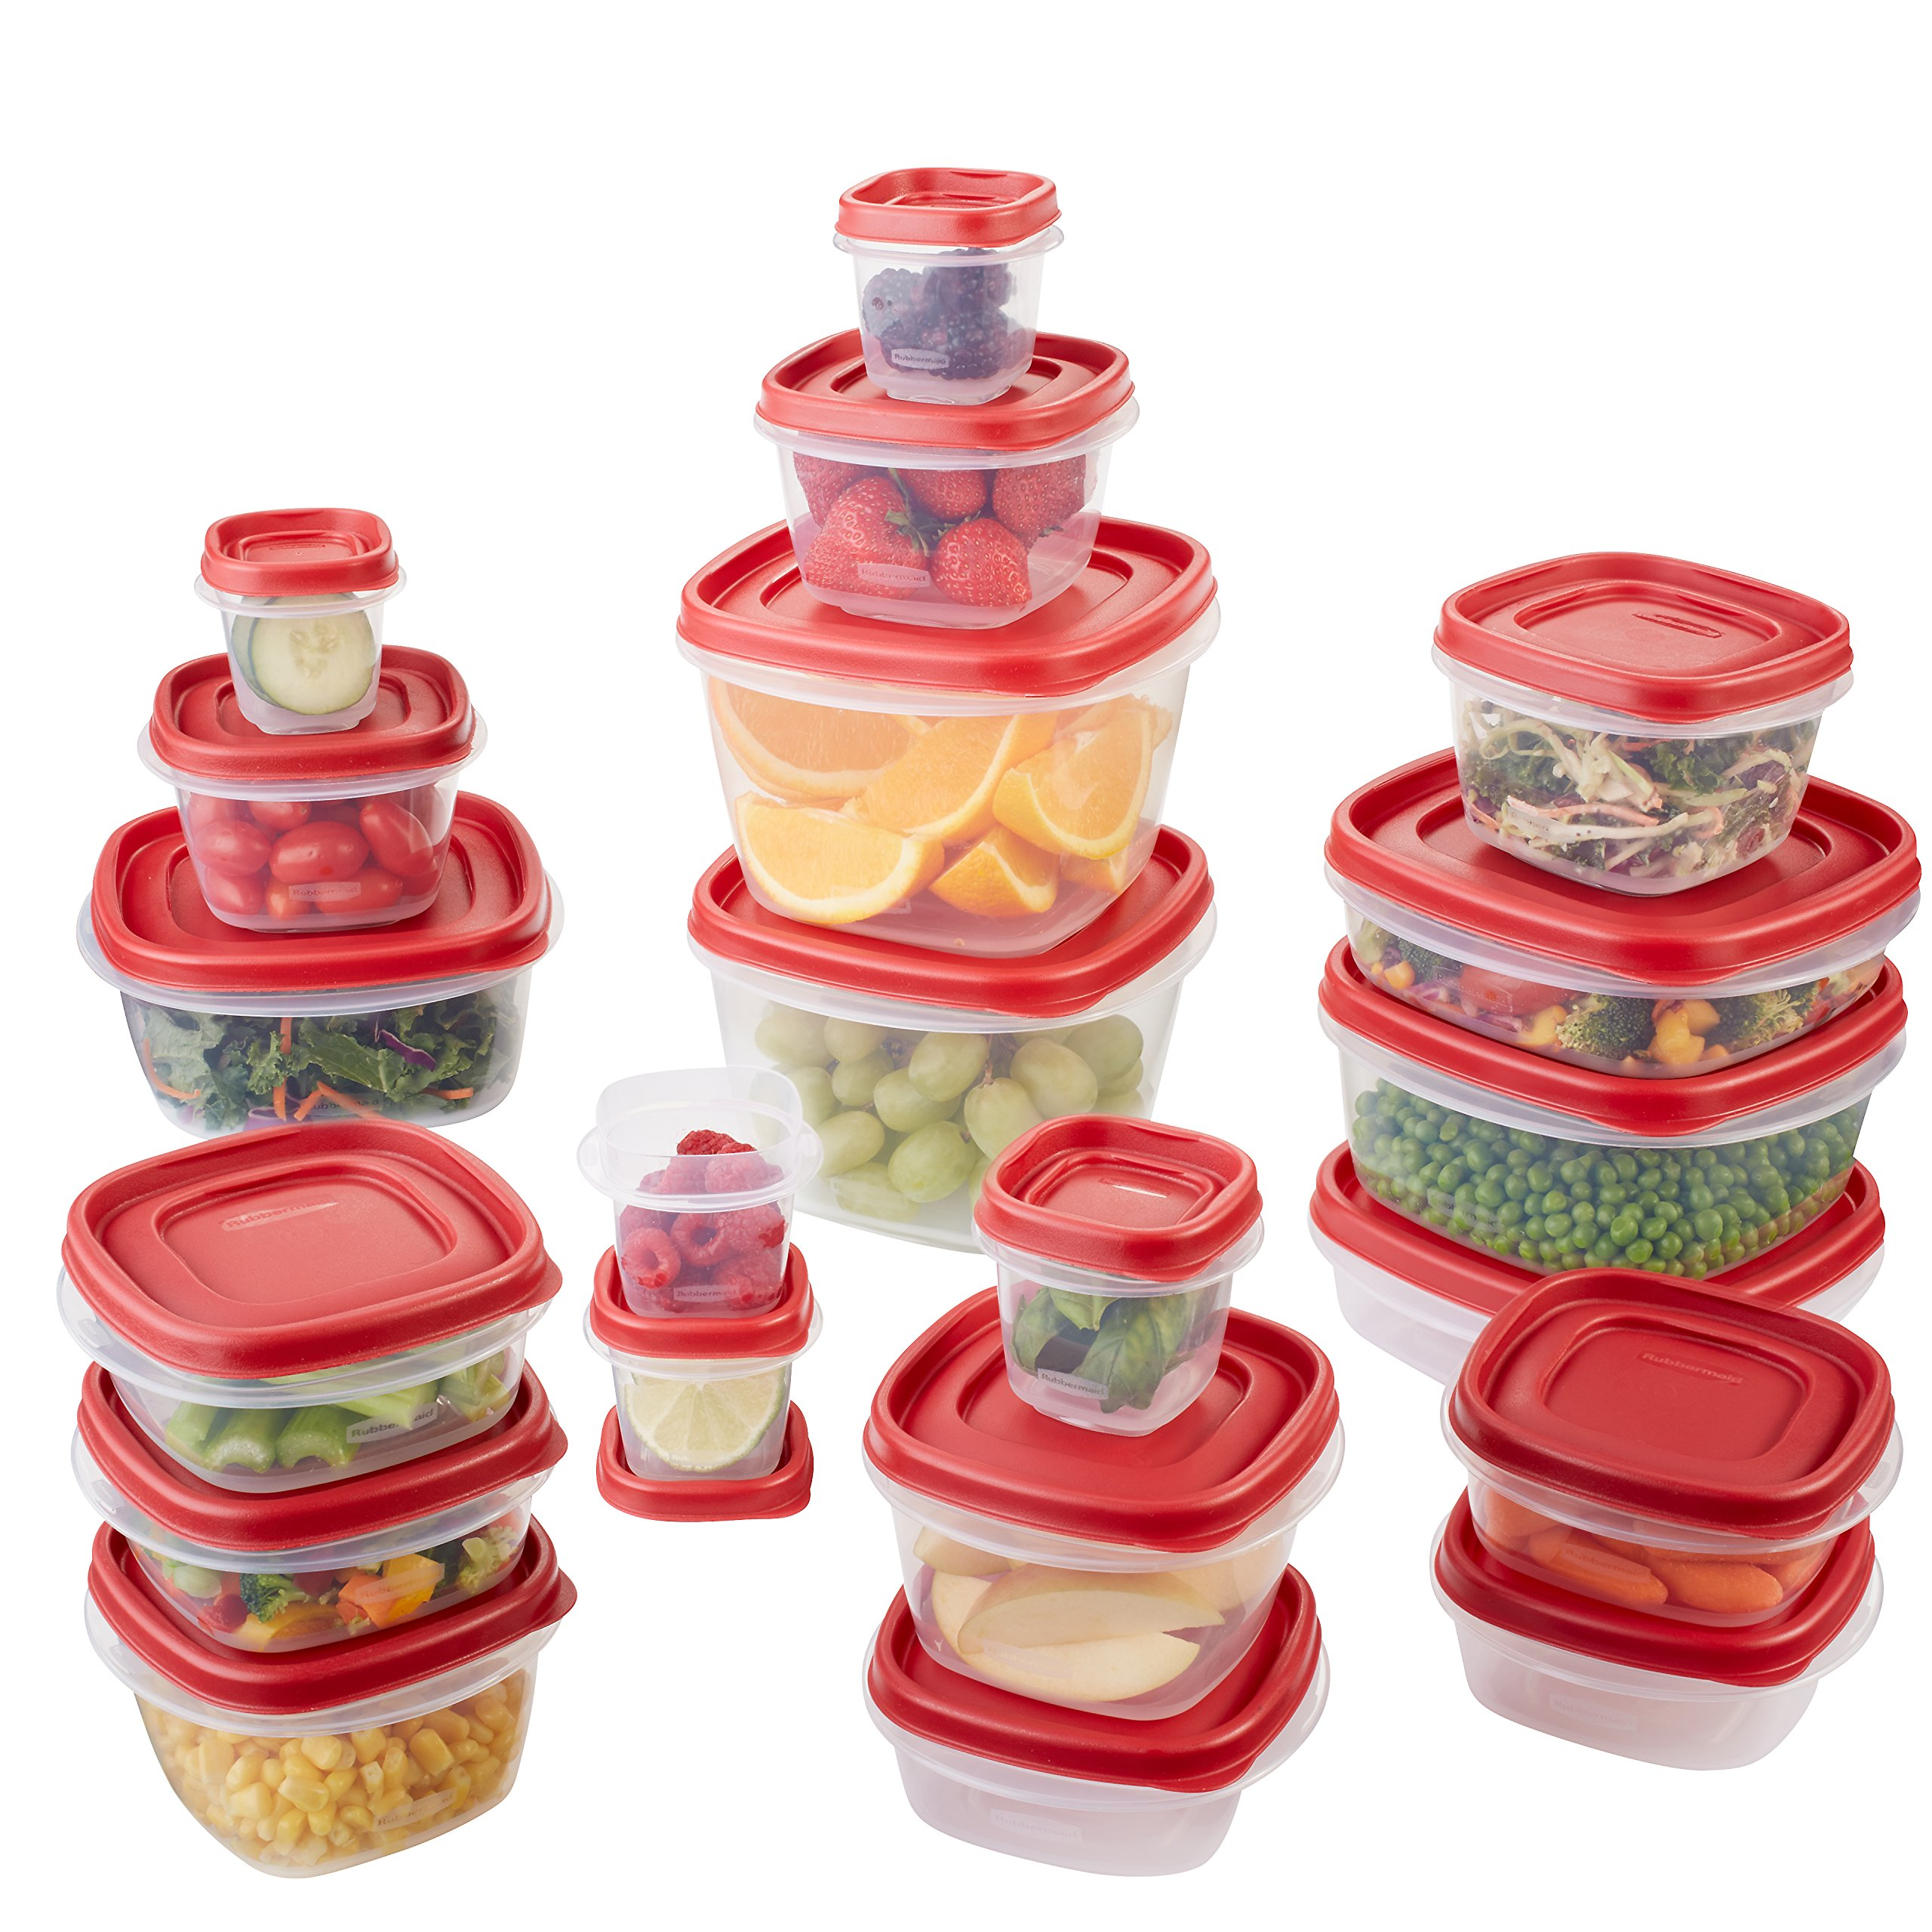 Rubbermaid Easy Find Lids Food Storage Containers, Racer Red, 42-Piece Set 1880801 by Rubbermaid